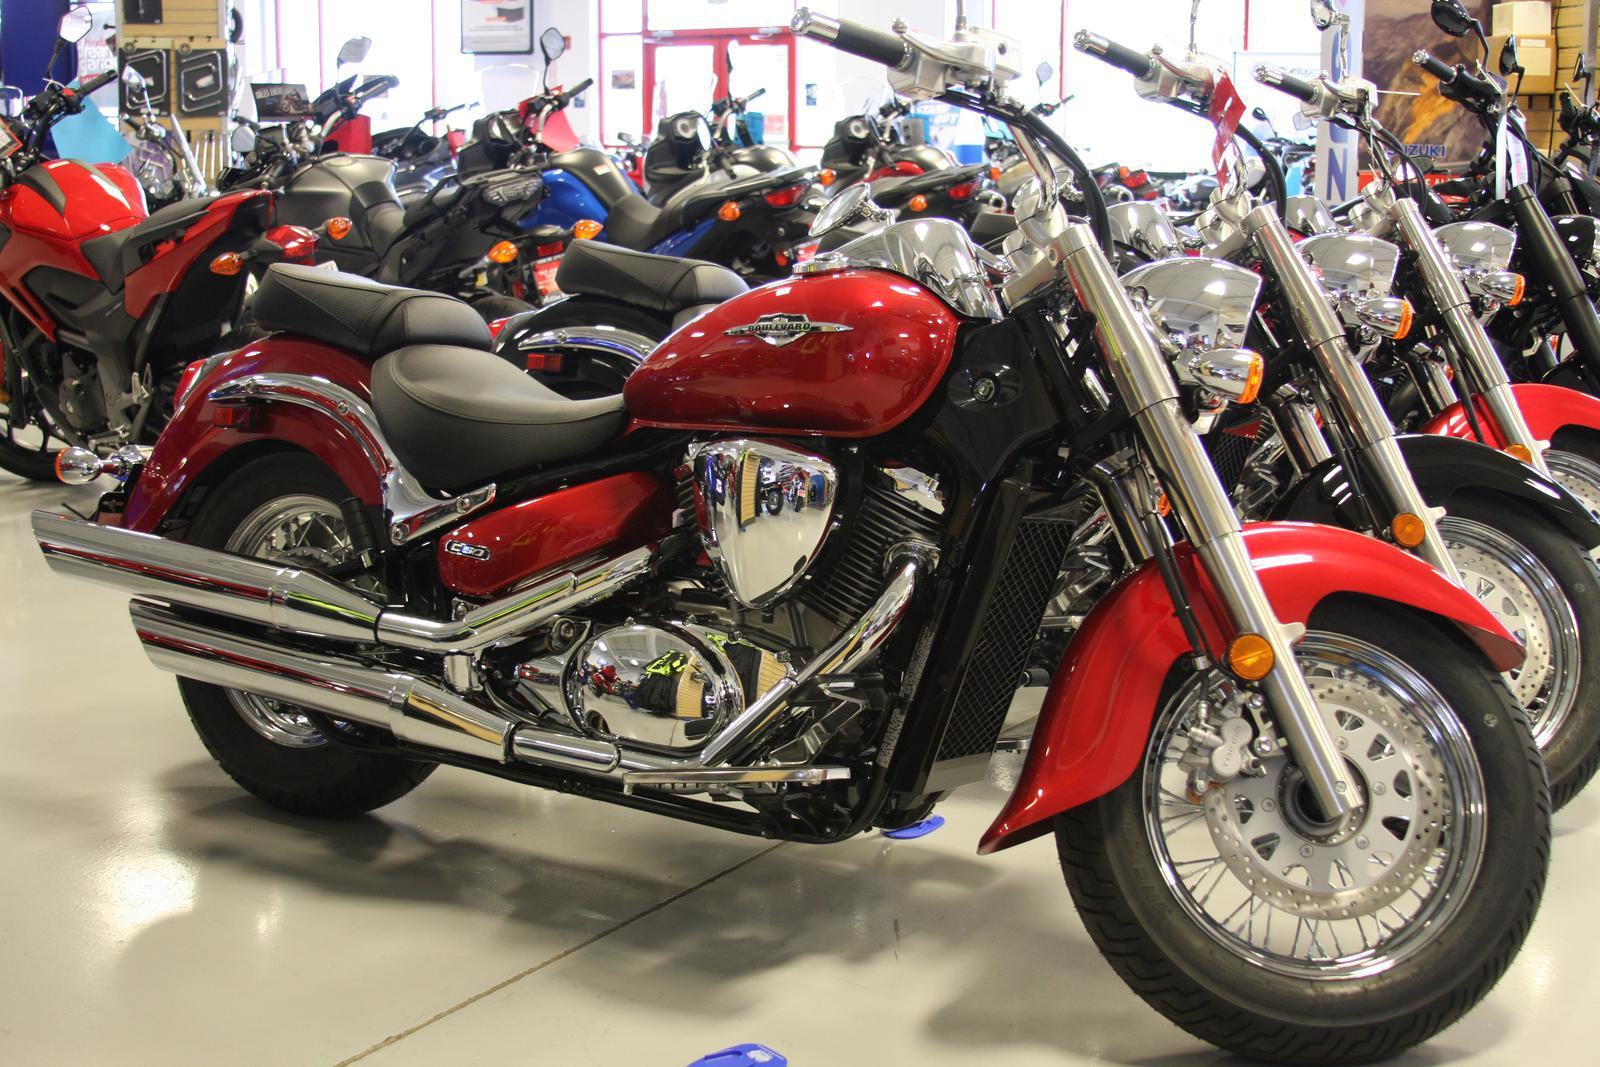 2015 Suzuki BOULEVARD C50 for sale in YORK, PA. AMS Action ...